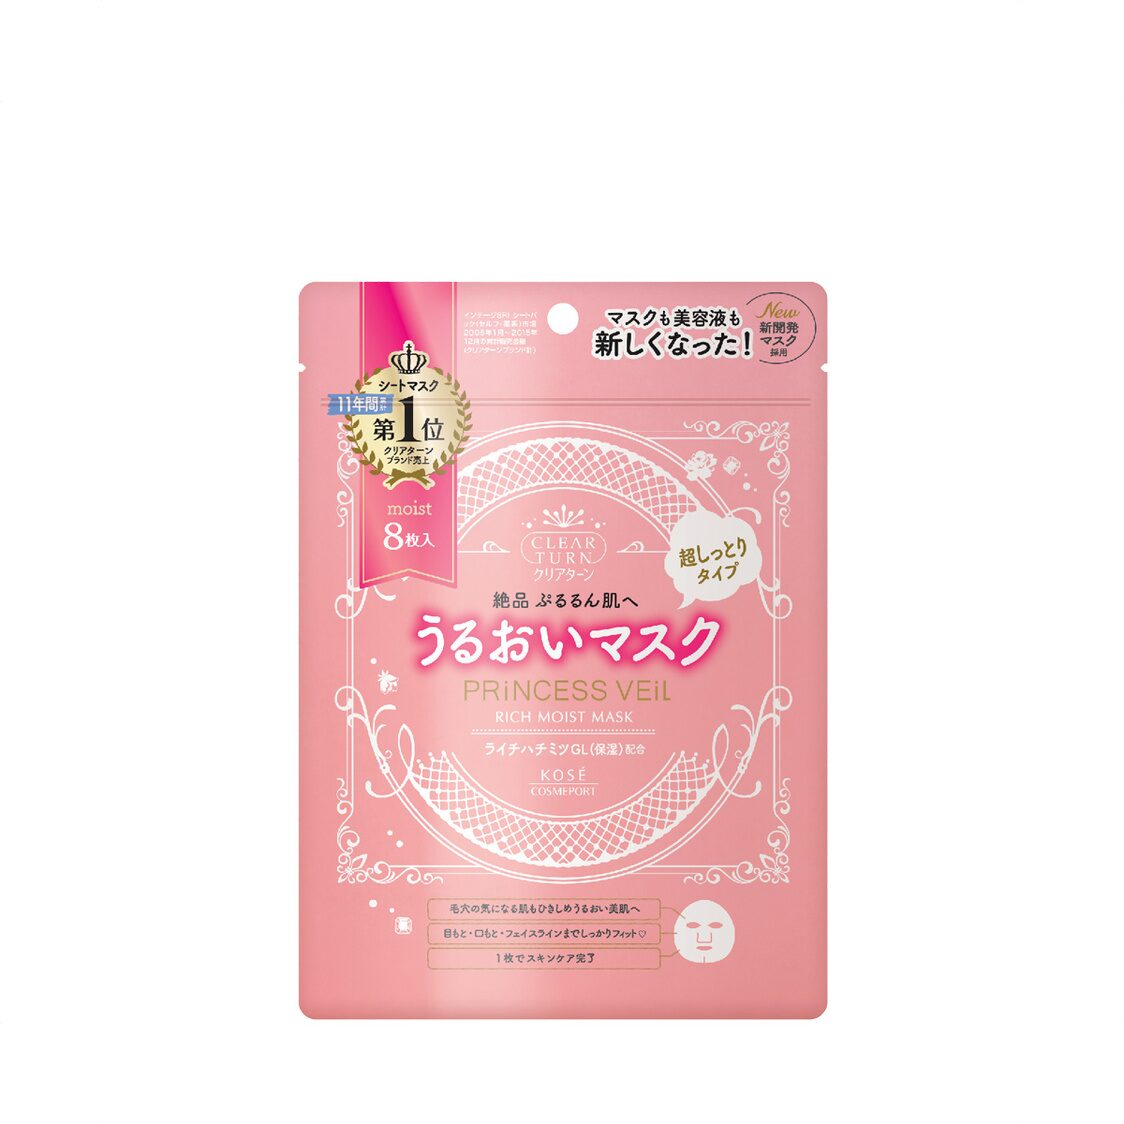 Princess Veil Rich Moist Mask 8s